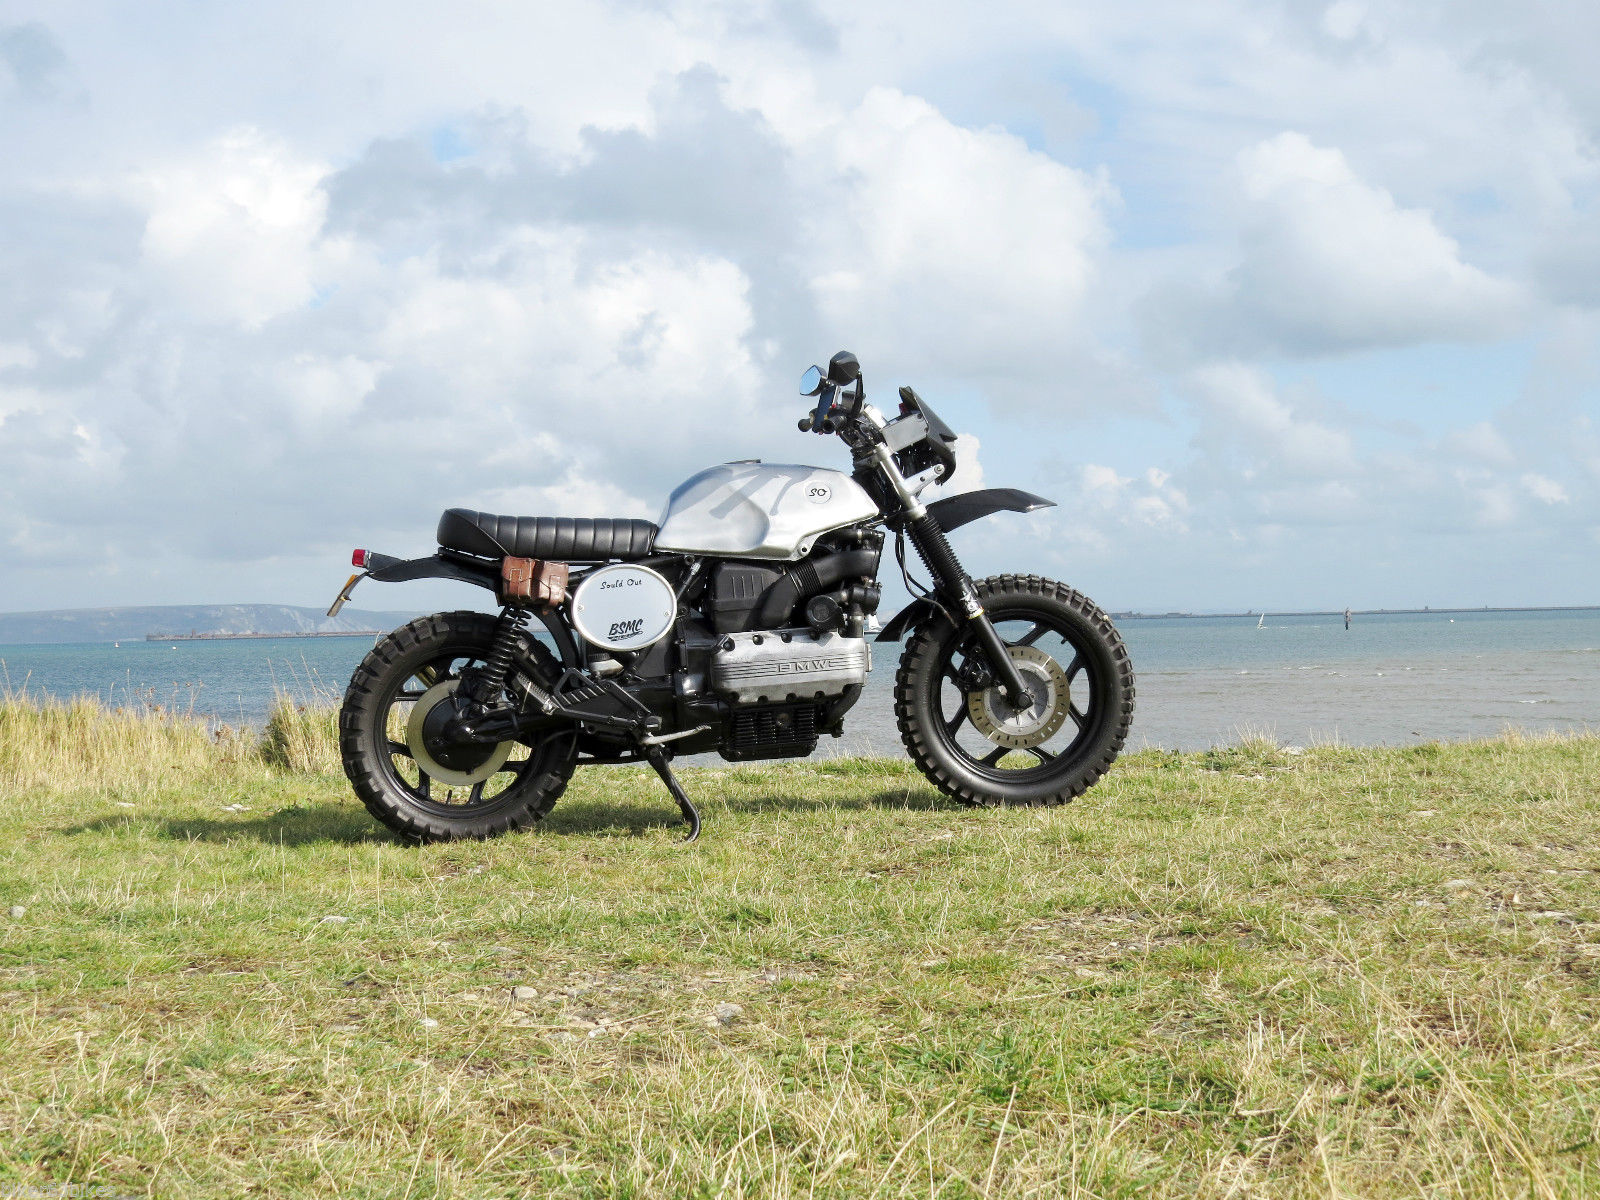 bmw k100 scrambler tracker cafe racer brat one off quality. Black Bedroom Furniture Sets. Home Design Ideas